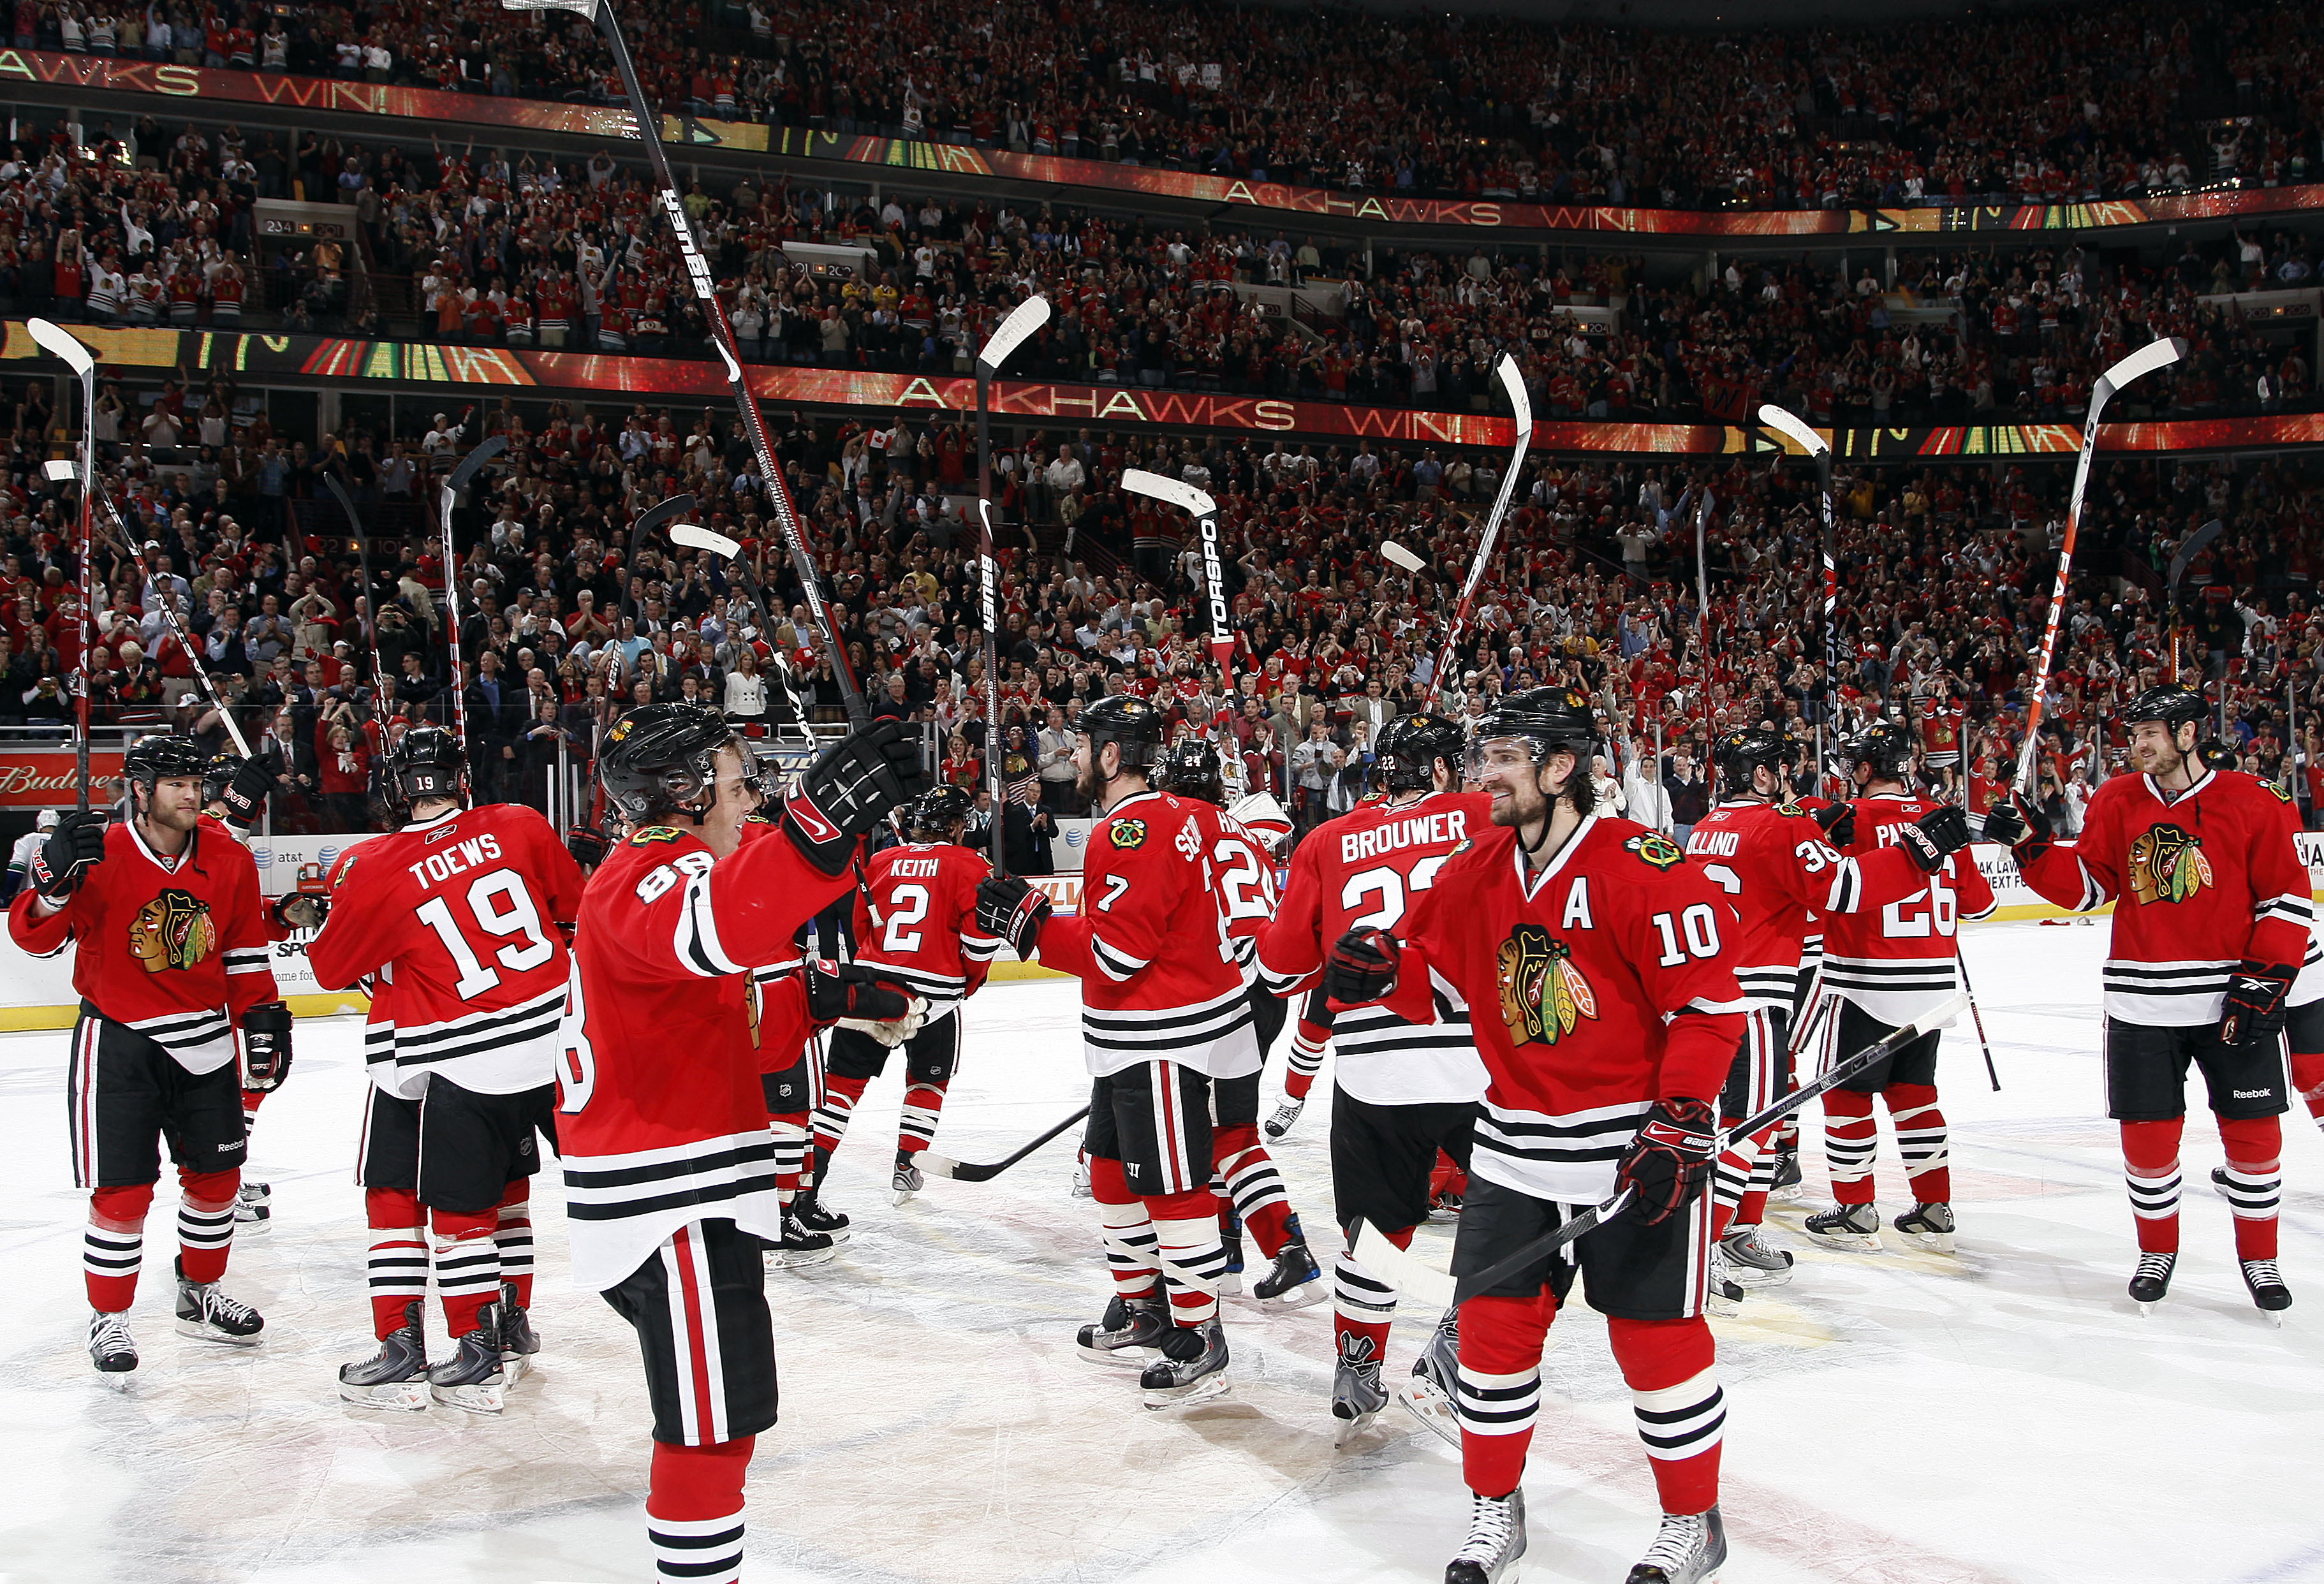 NHL and the Chicago Blackhawks